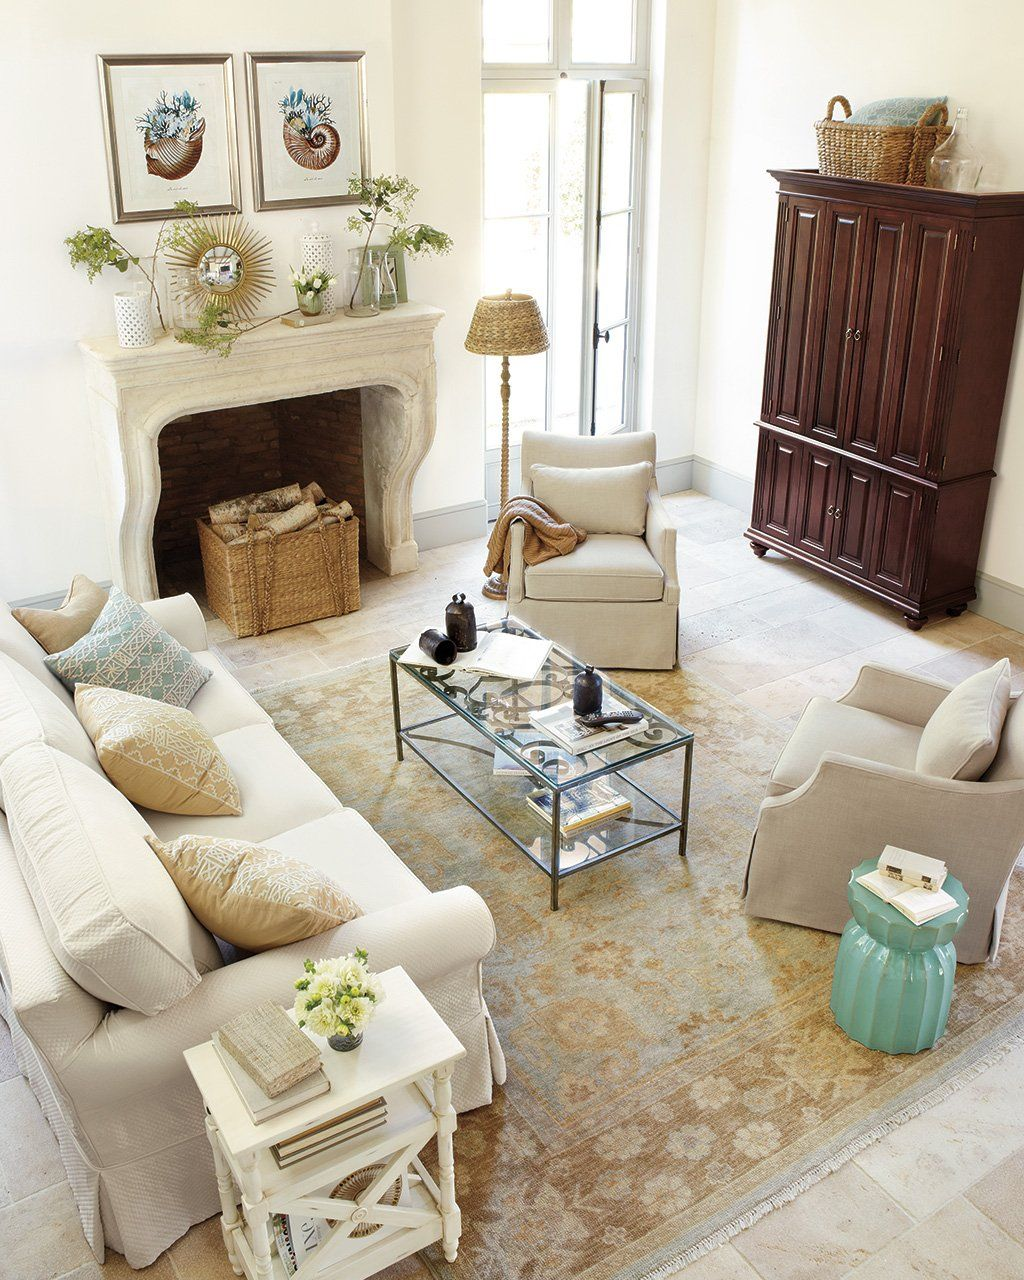 15 Ways to Layout Your Living Room | Columns, Gliders and Armoires